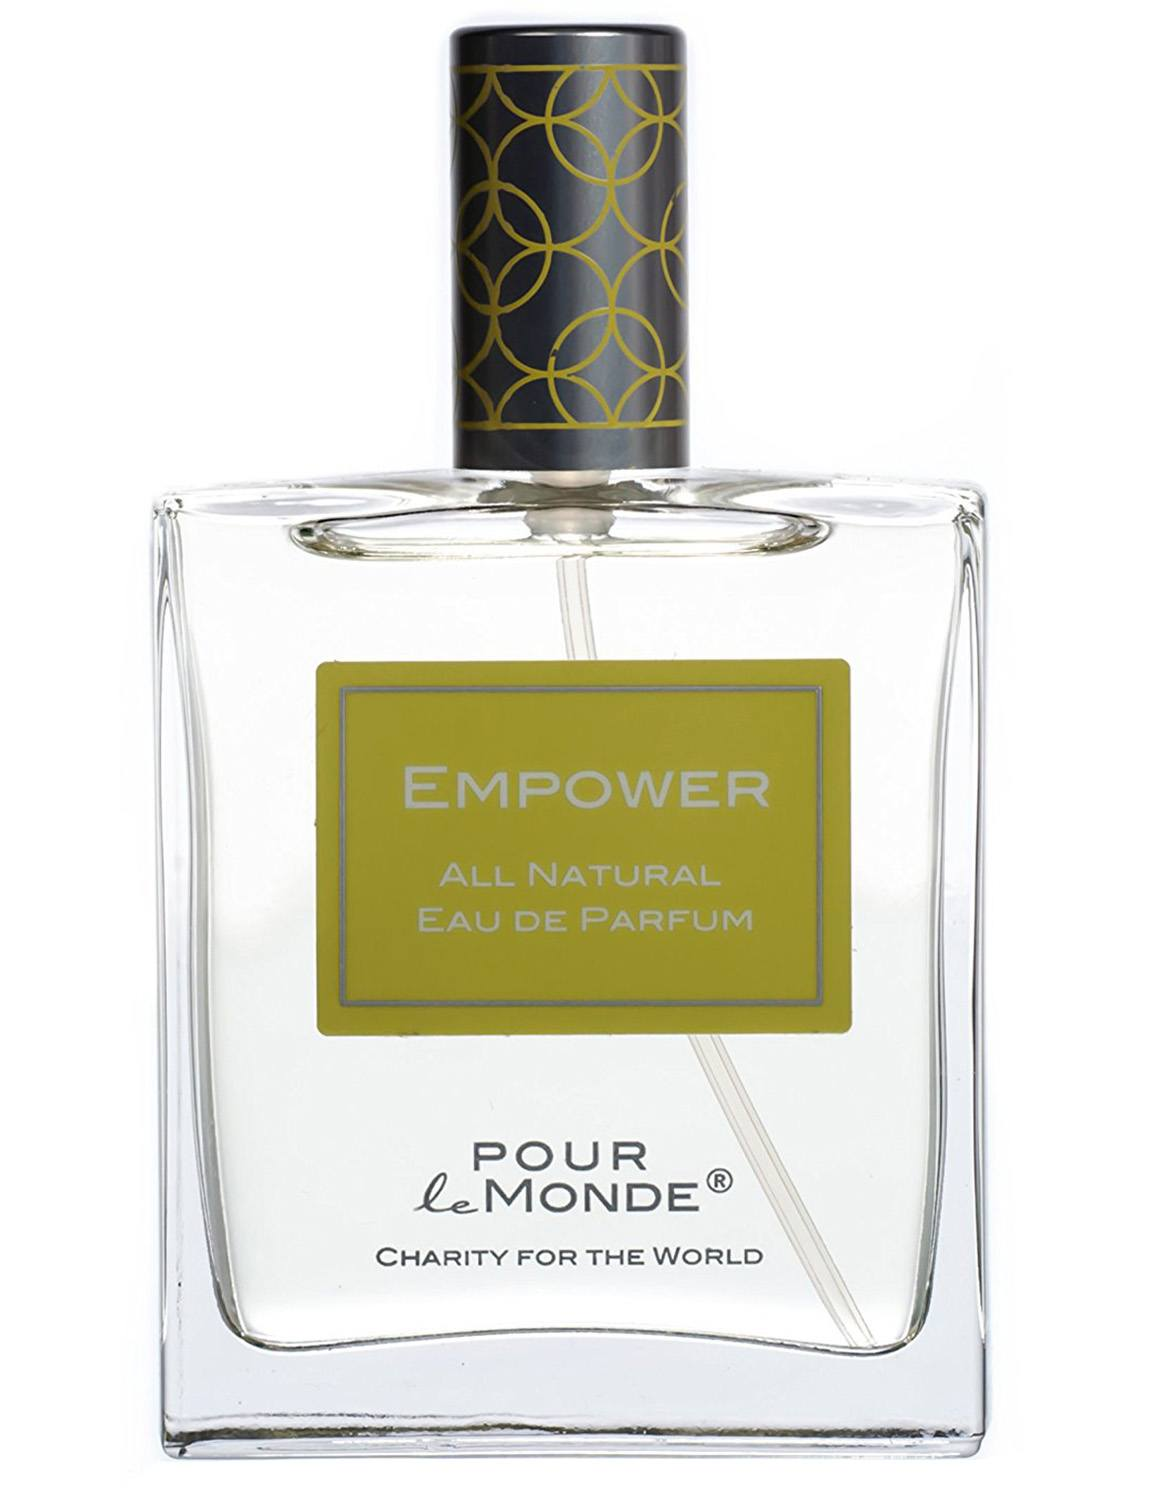 Pour le Monde Empower All Natural Eau de Parfum